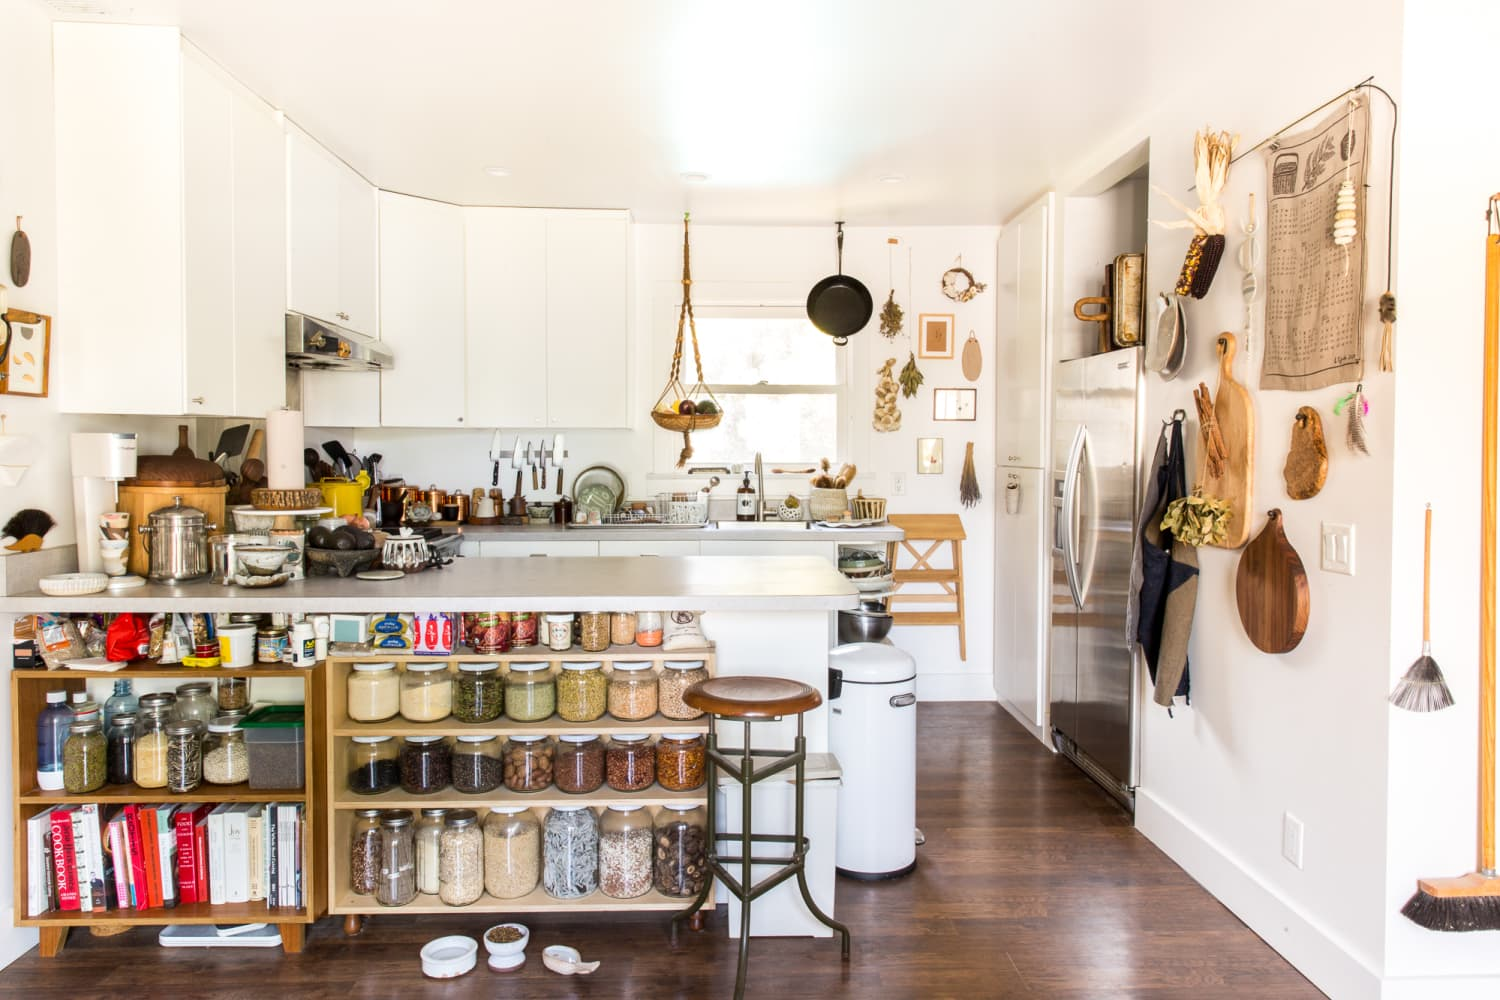 Get Your Kitchen Organized for Good with These Space-Saving Solutions from Wayfair's Way Day Sale